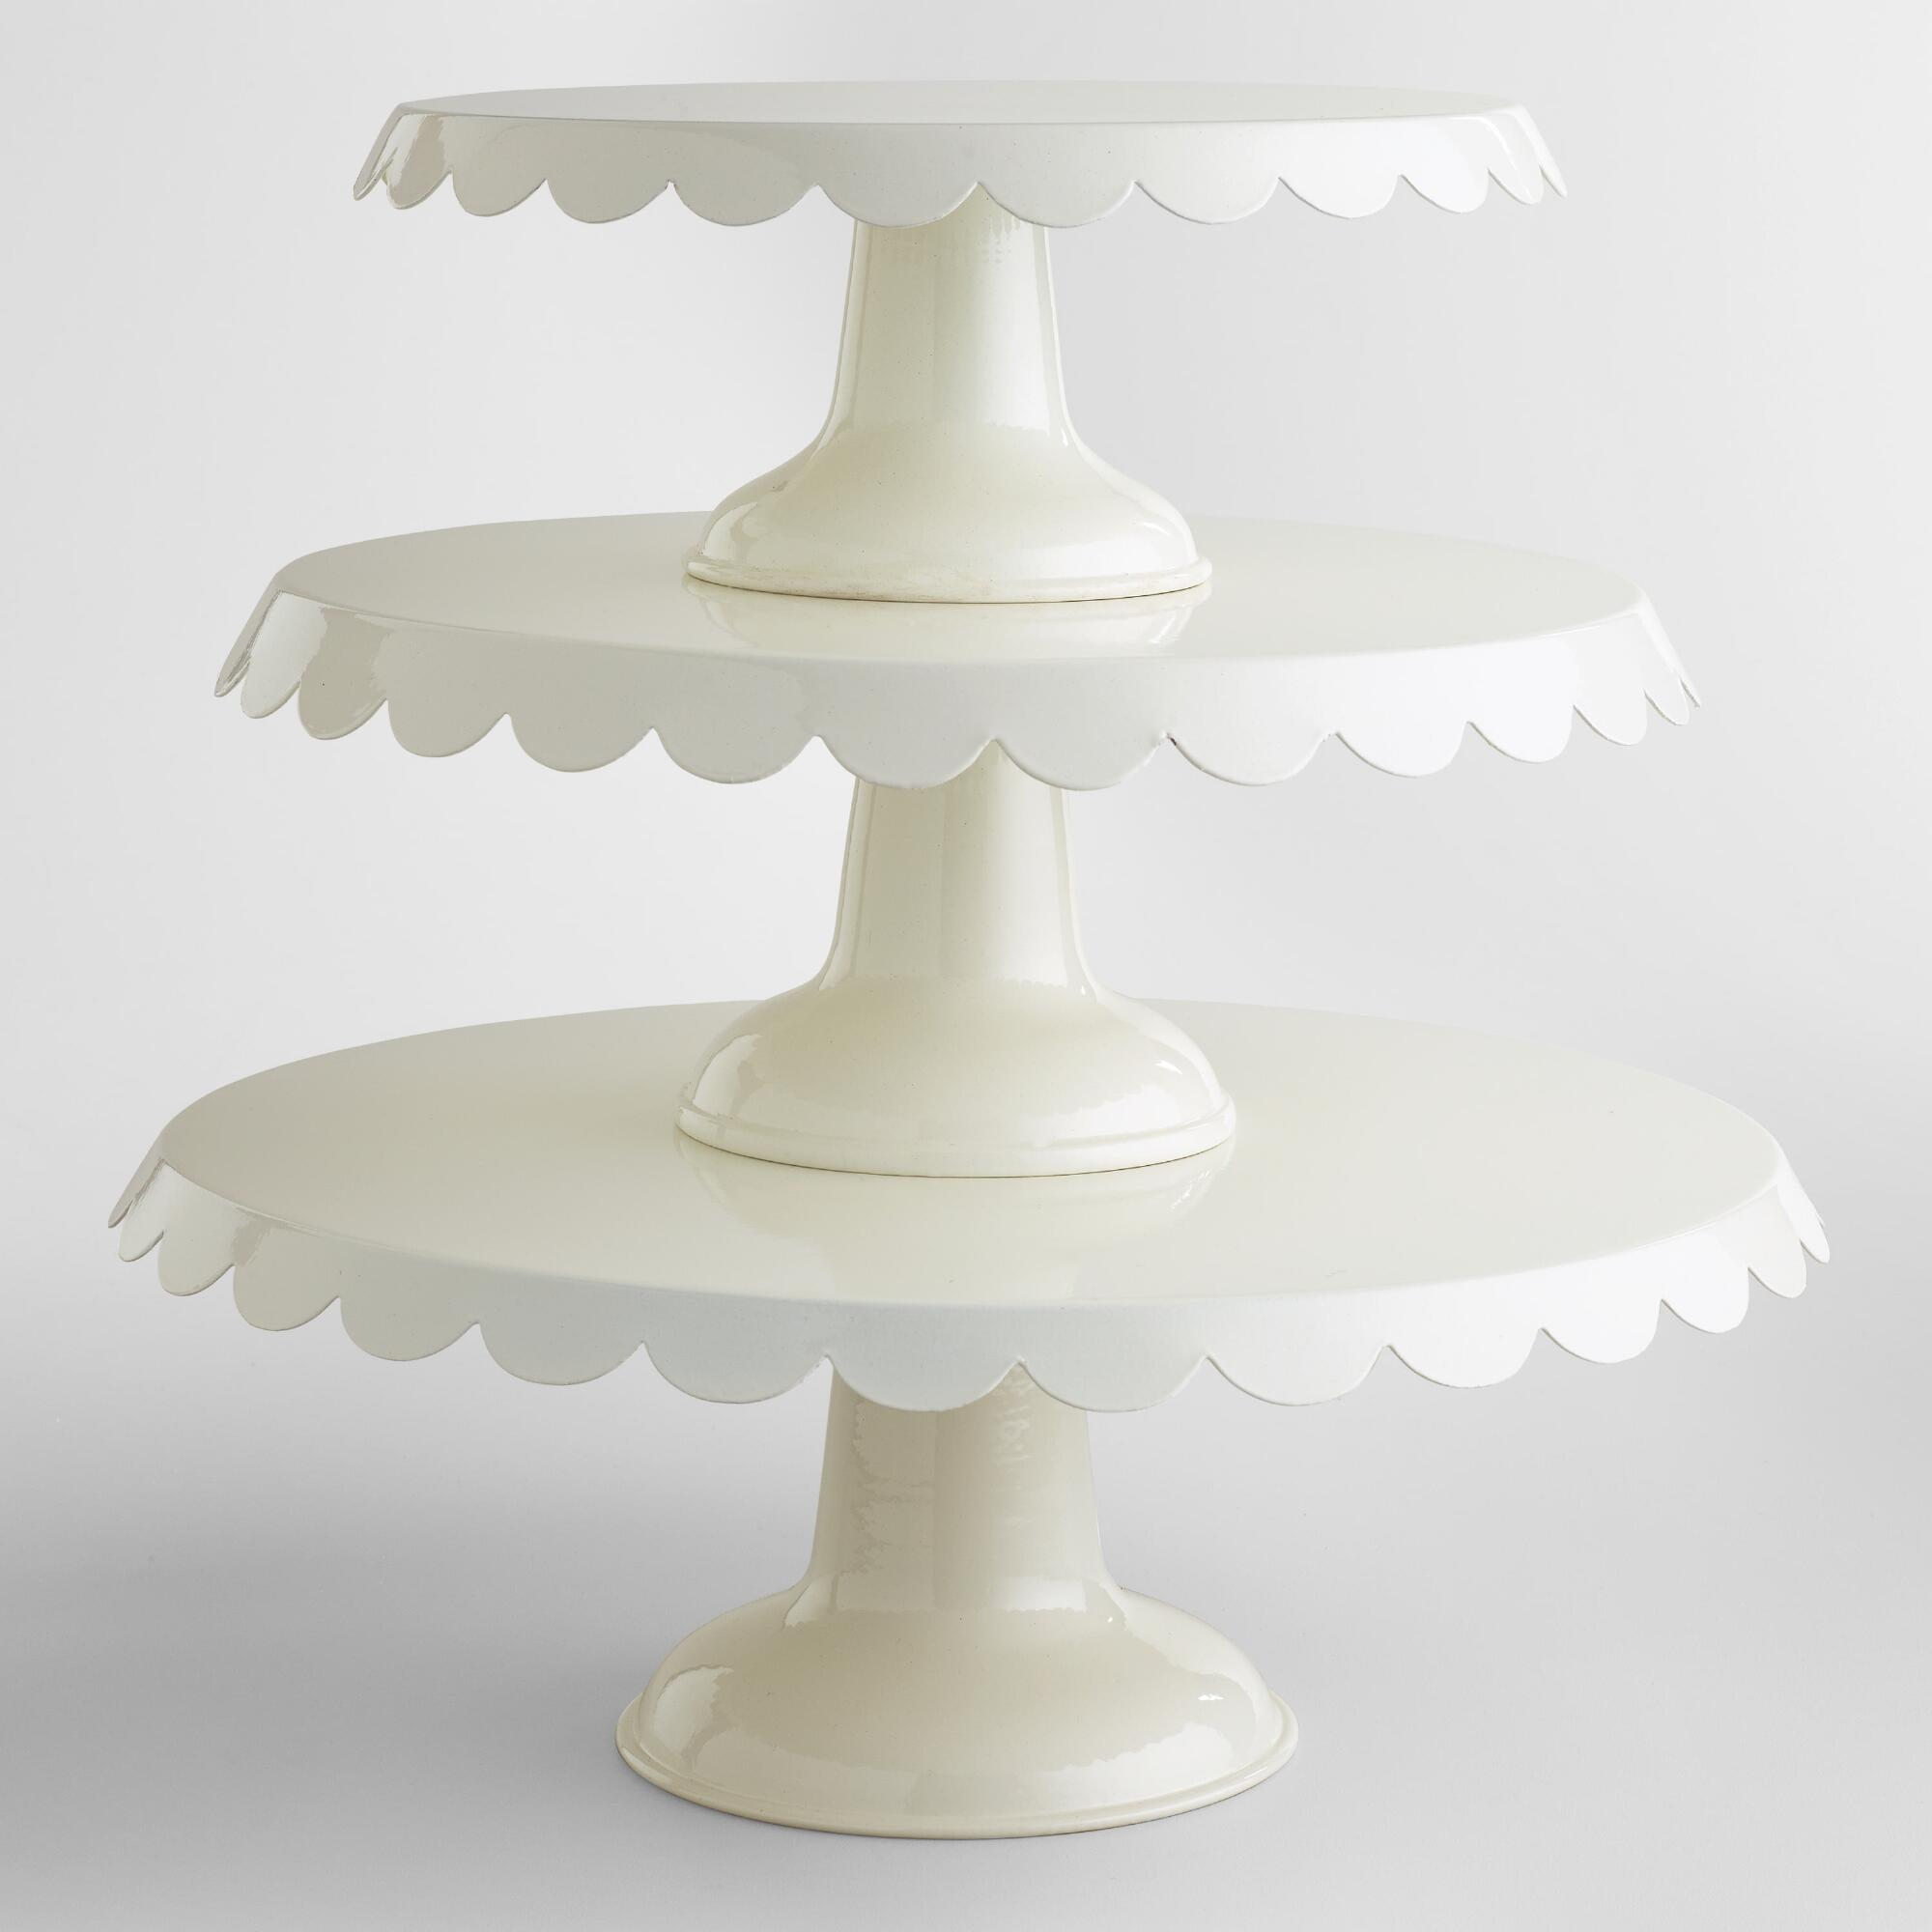 diameter giftbay pedestal wedding stainless steel height on cake products top stand round